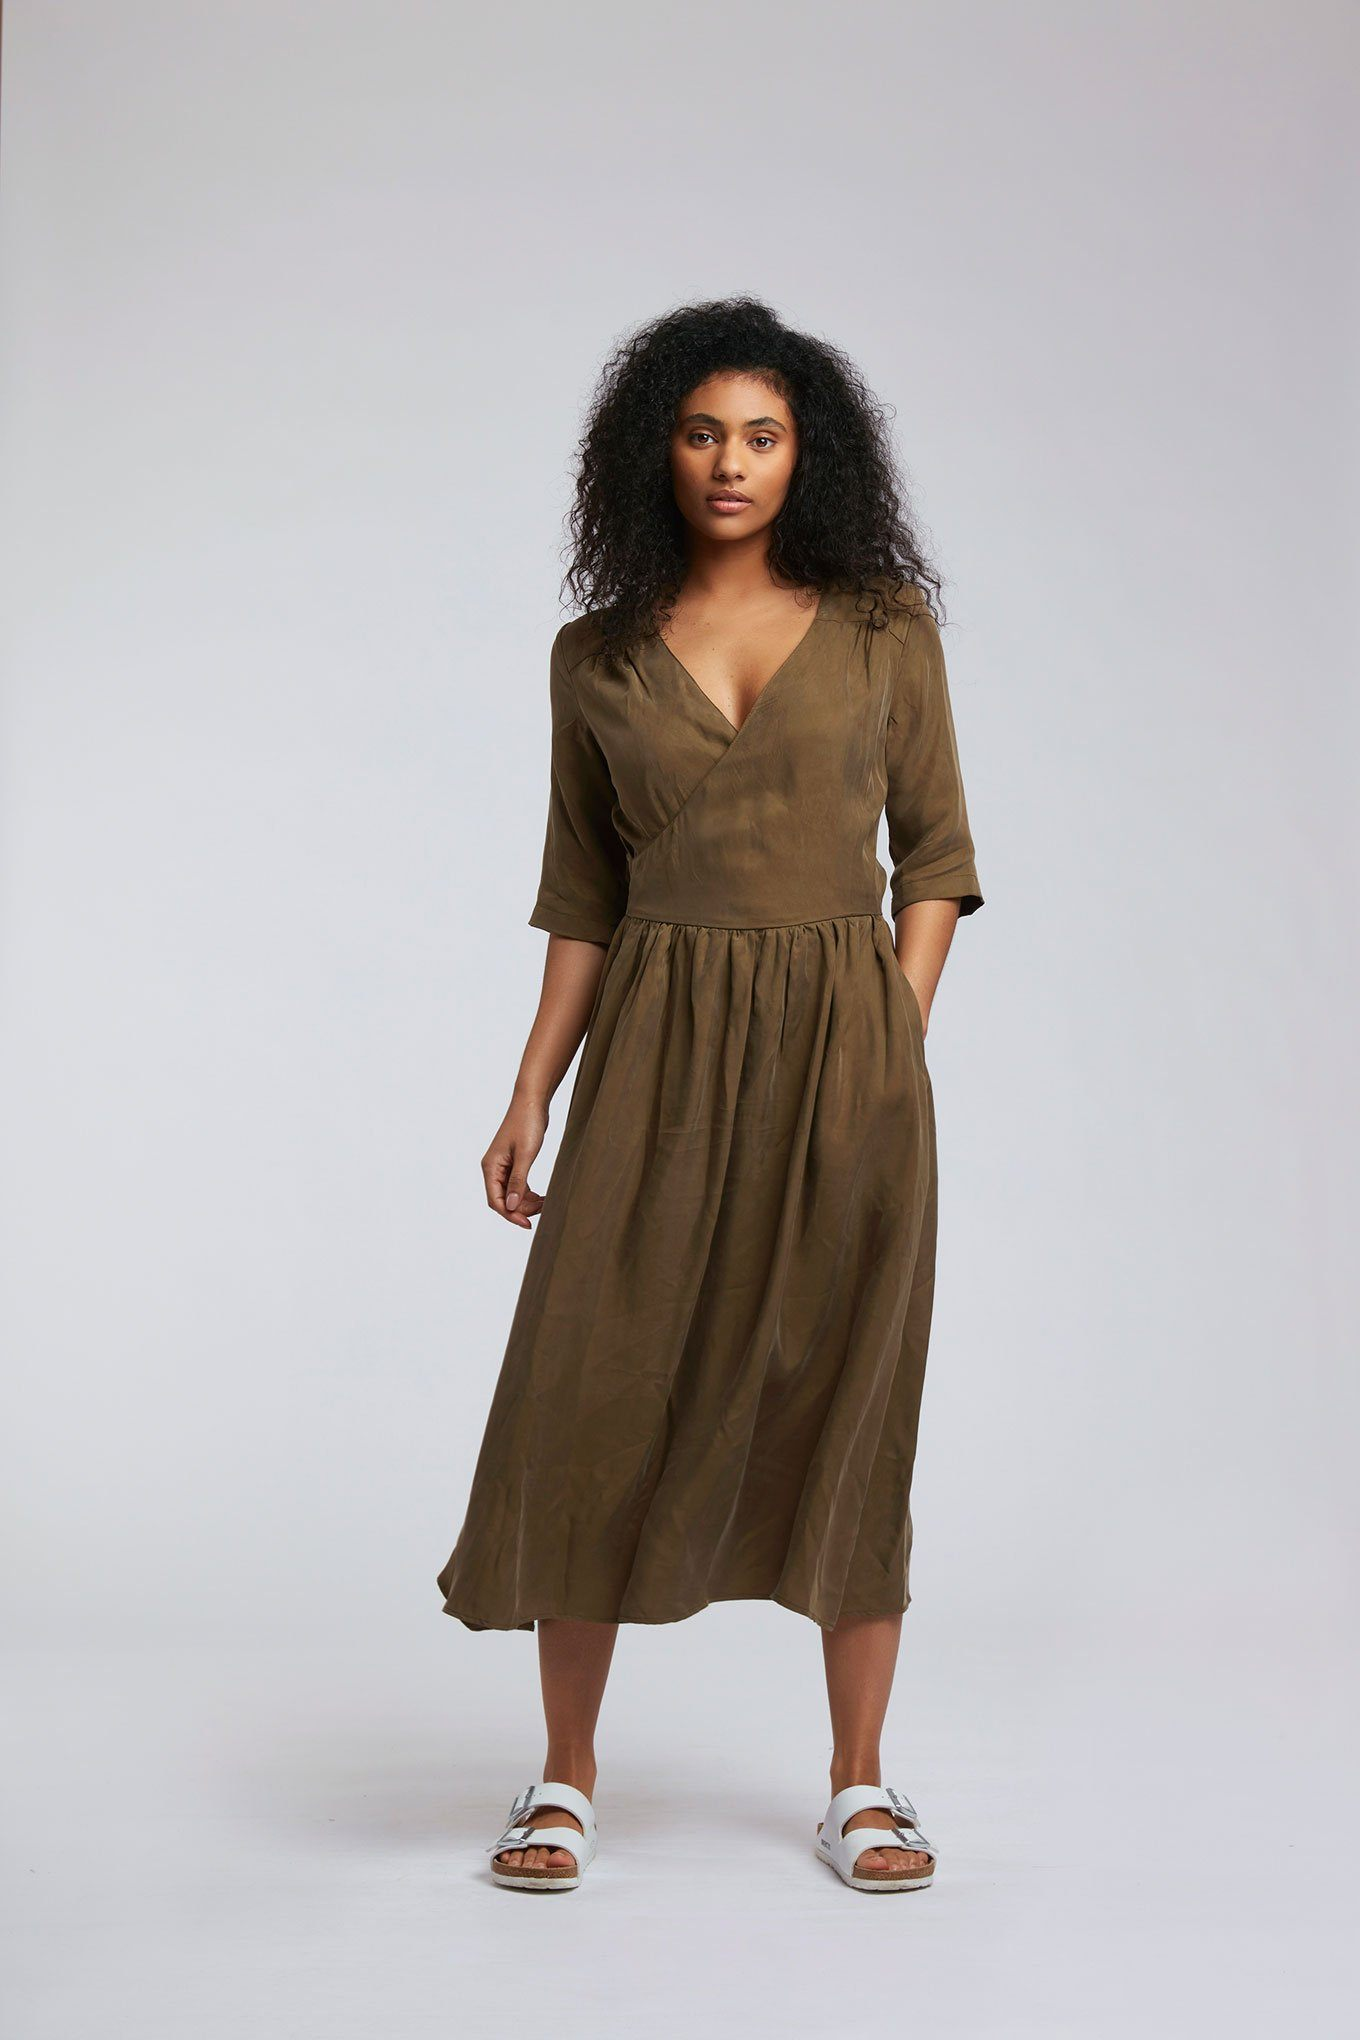 Dress - TENZING Cupro Dress Khaki